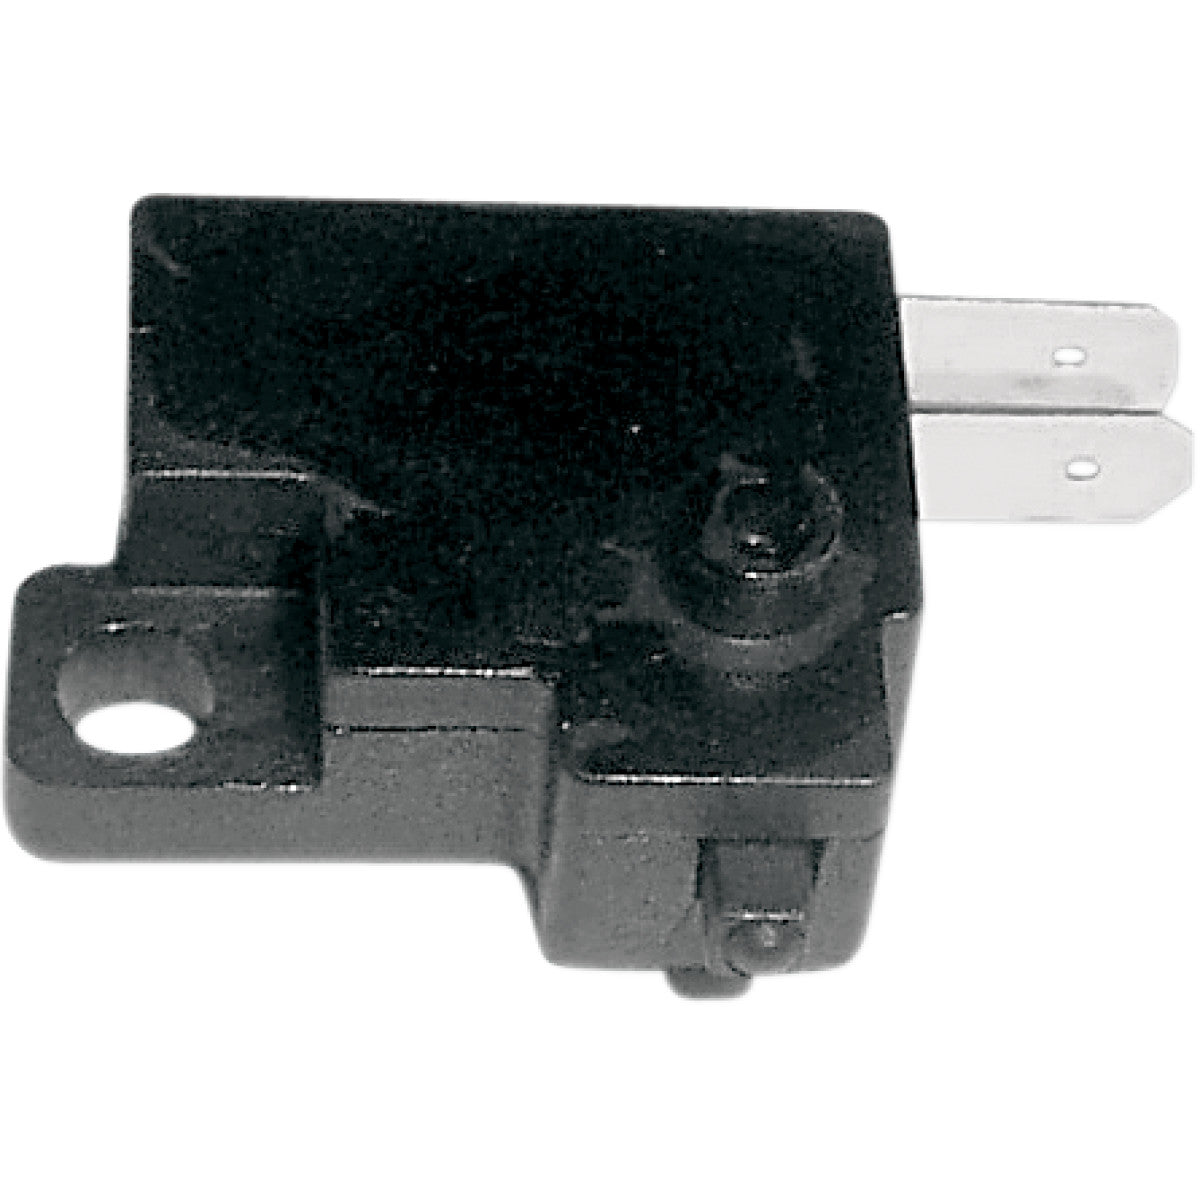 2106-0049 K&S TECHNOLOGIES Front Brake Light Switch BRAKE SWITCH HON FRT